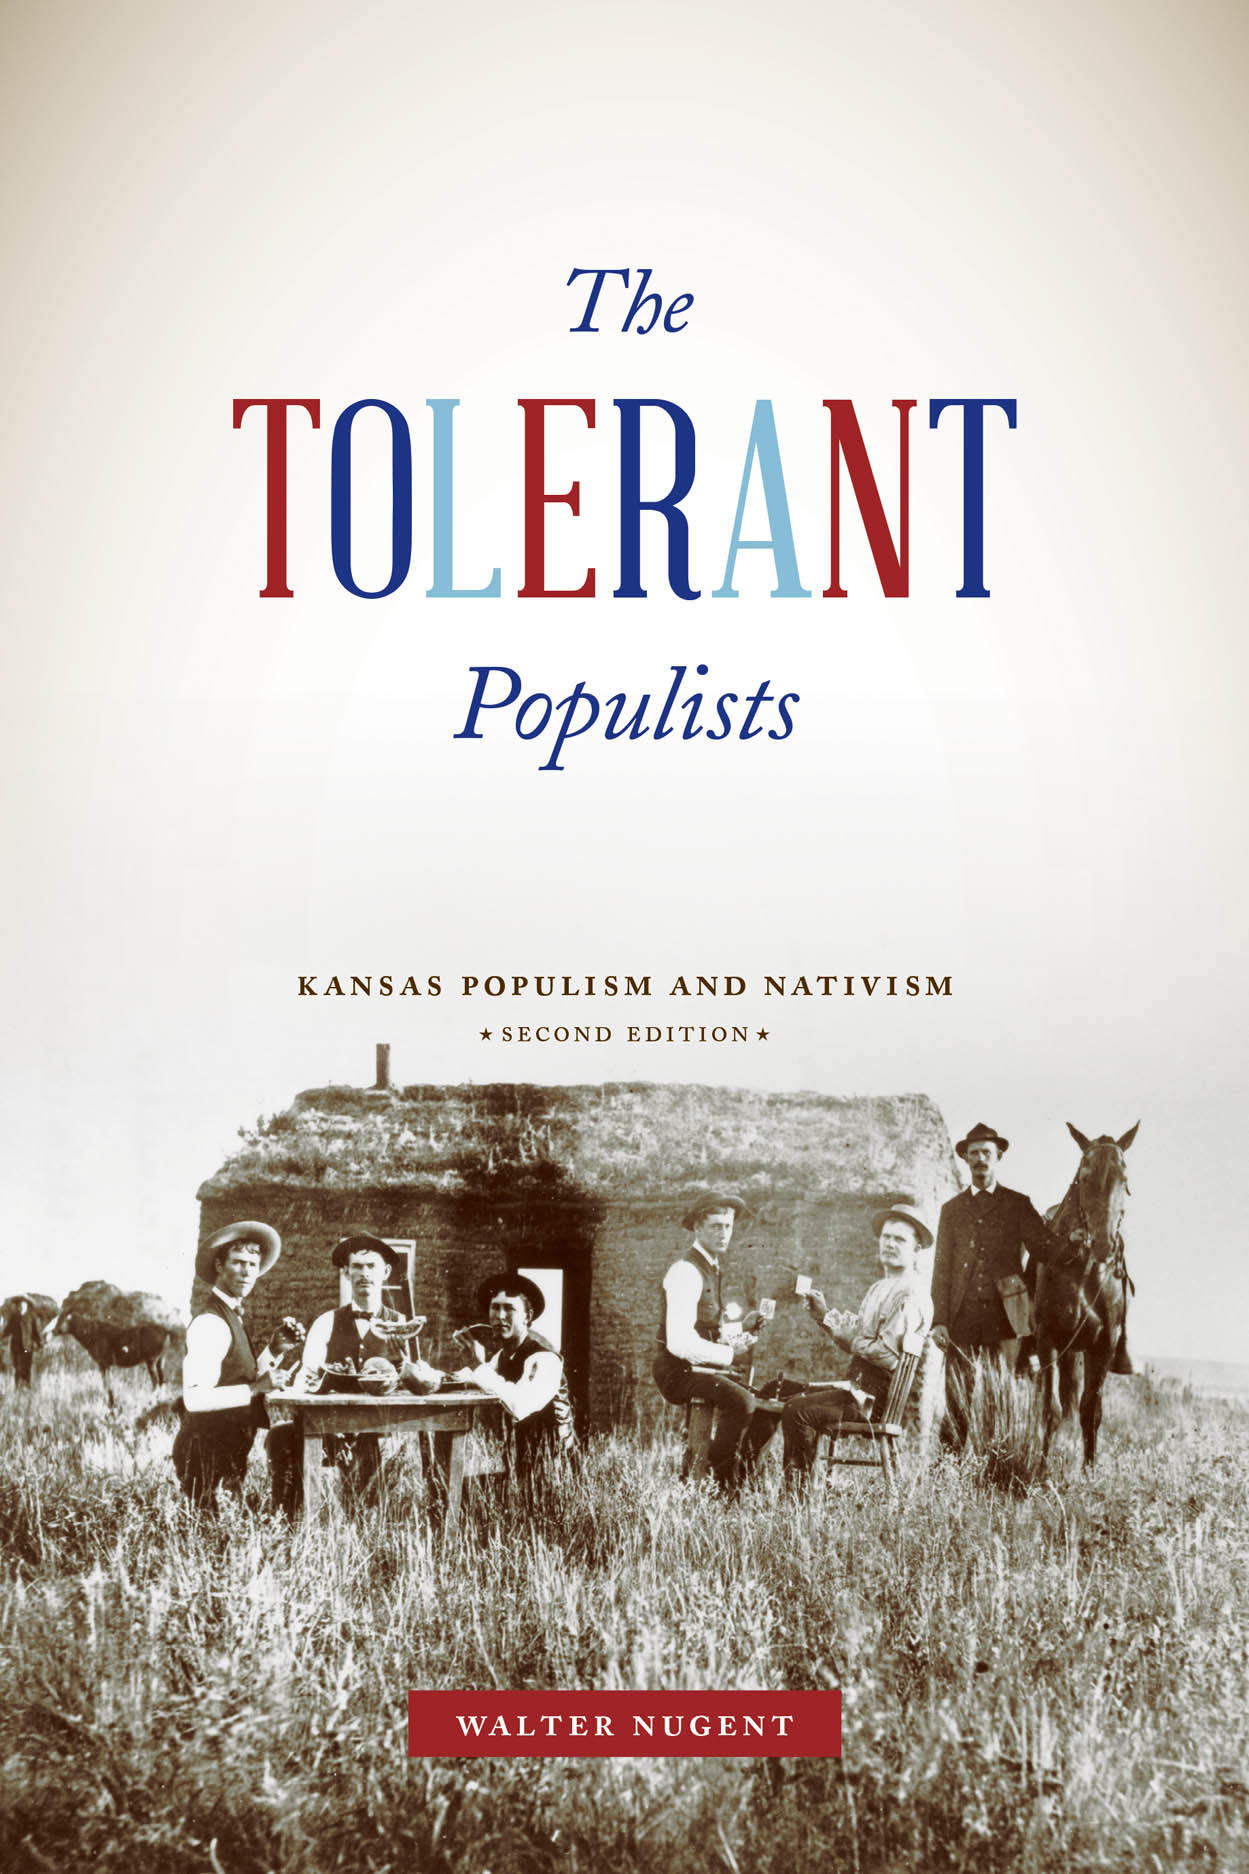 The Tolerant Populists, Second Edition